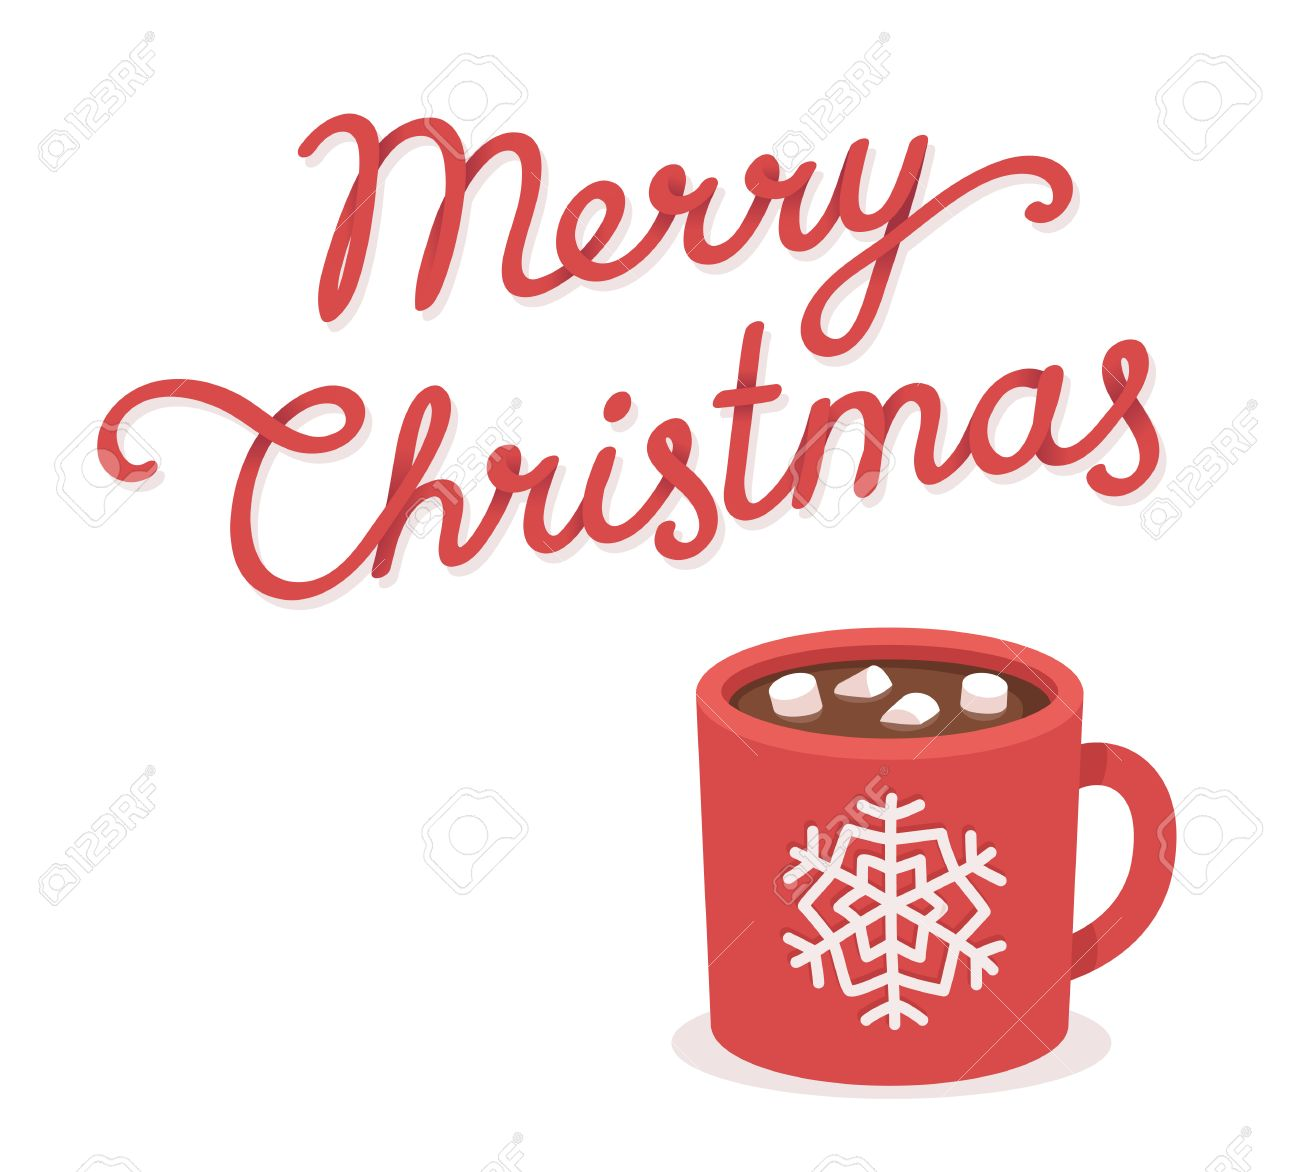 Merry christmas greeting card with hot chocolate and marshmallow merry christmas greeting card with hot chocolate and marshmallow cup hand drawn lettering isolated m4hsunfo